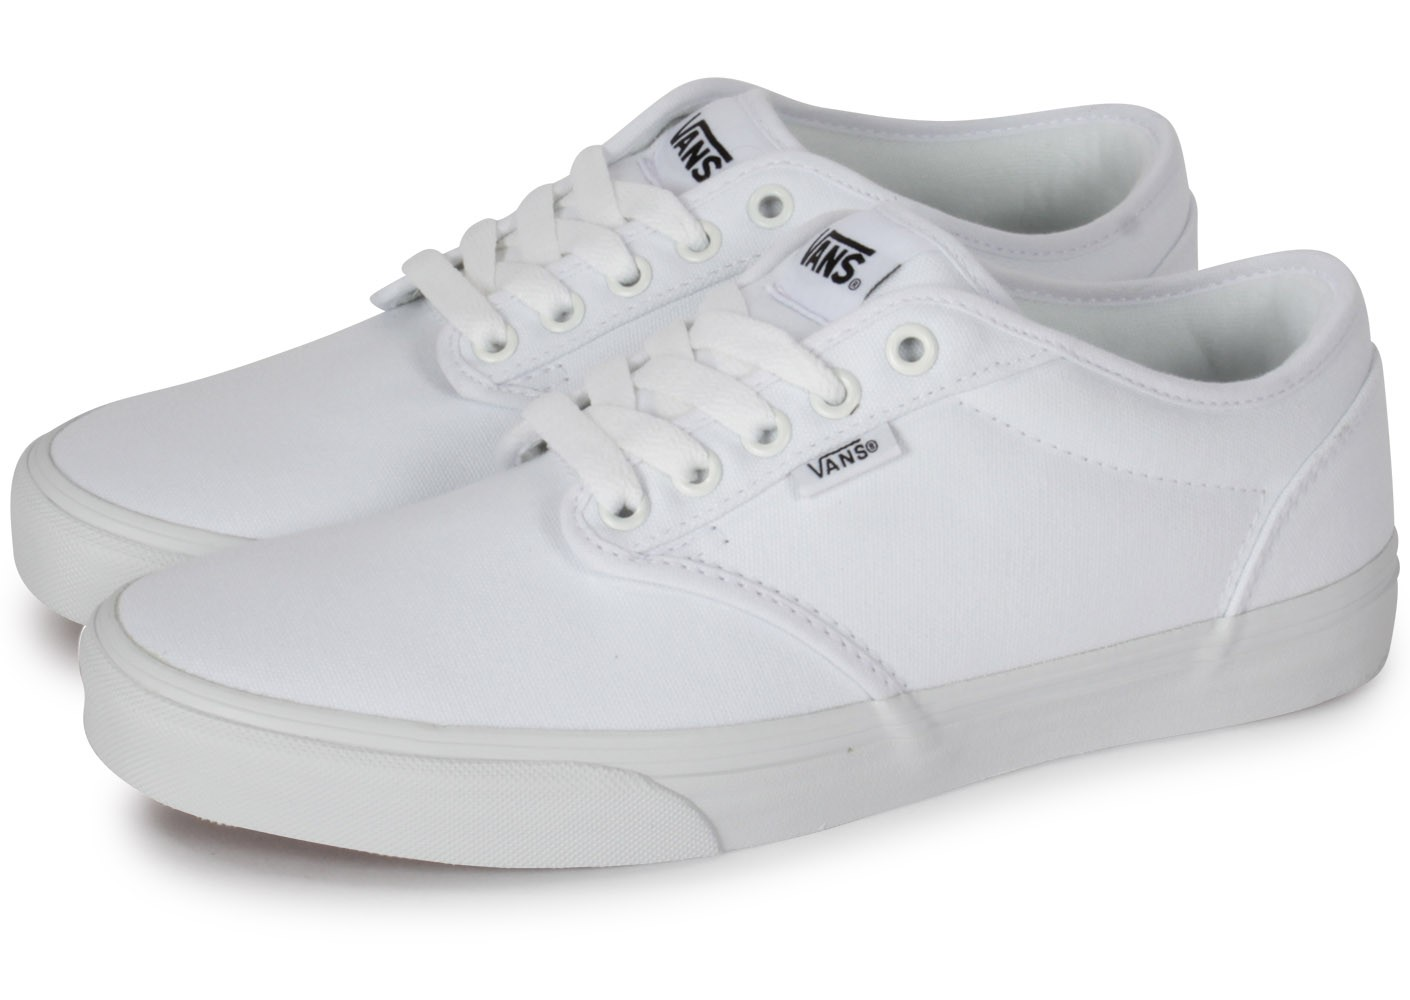 Vans Atwood Toile Blanche - Chaussures Baskets homme - Chausport